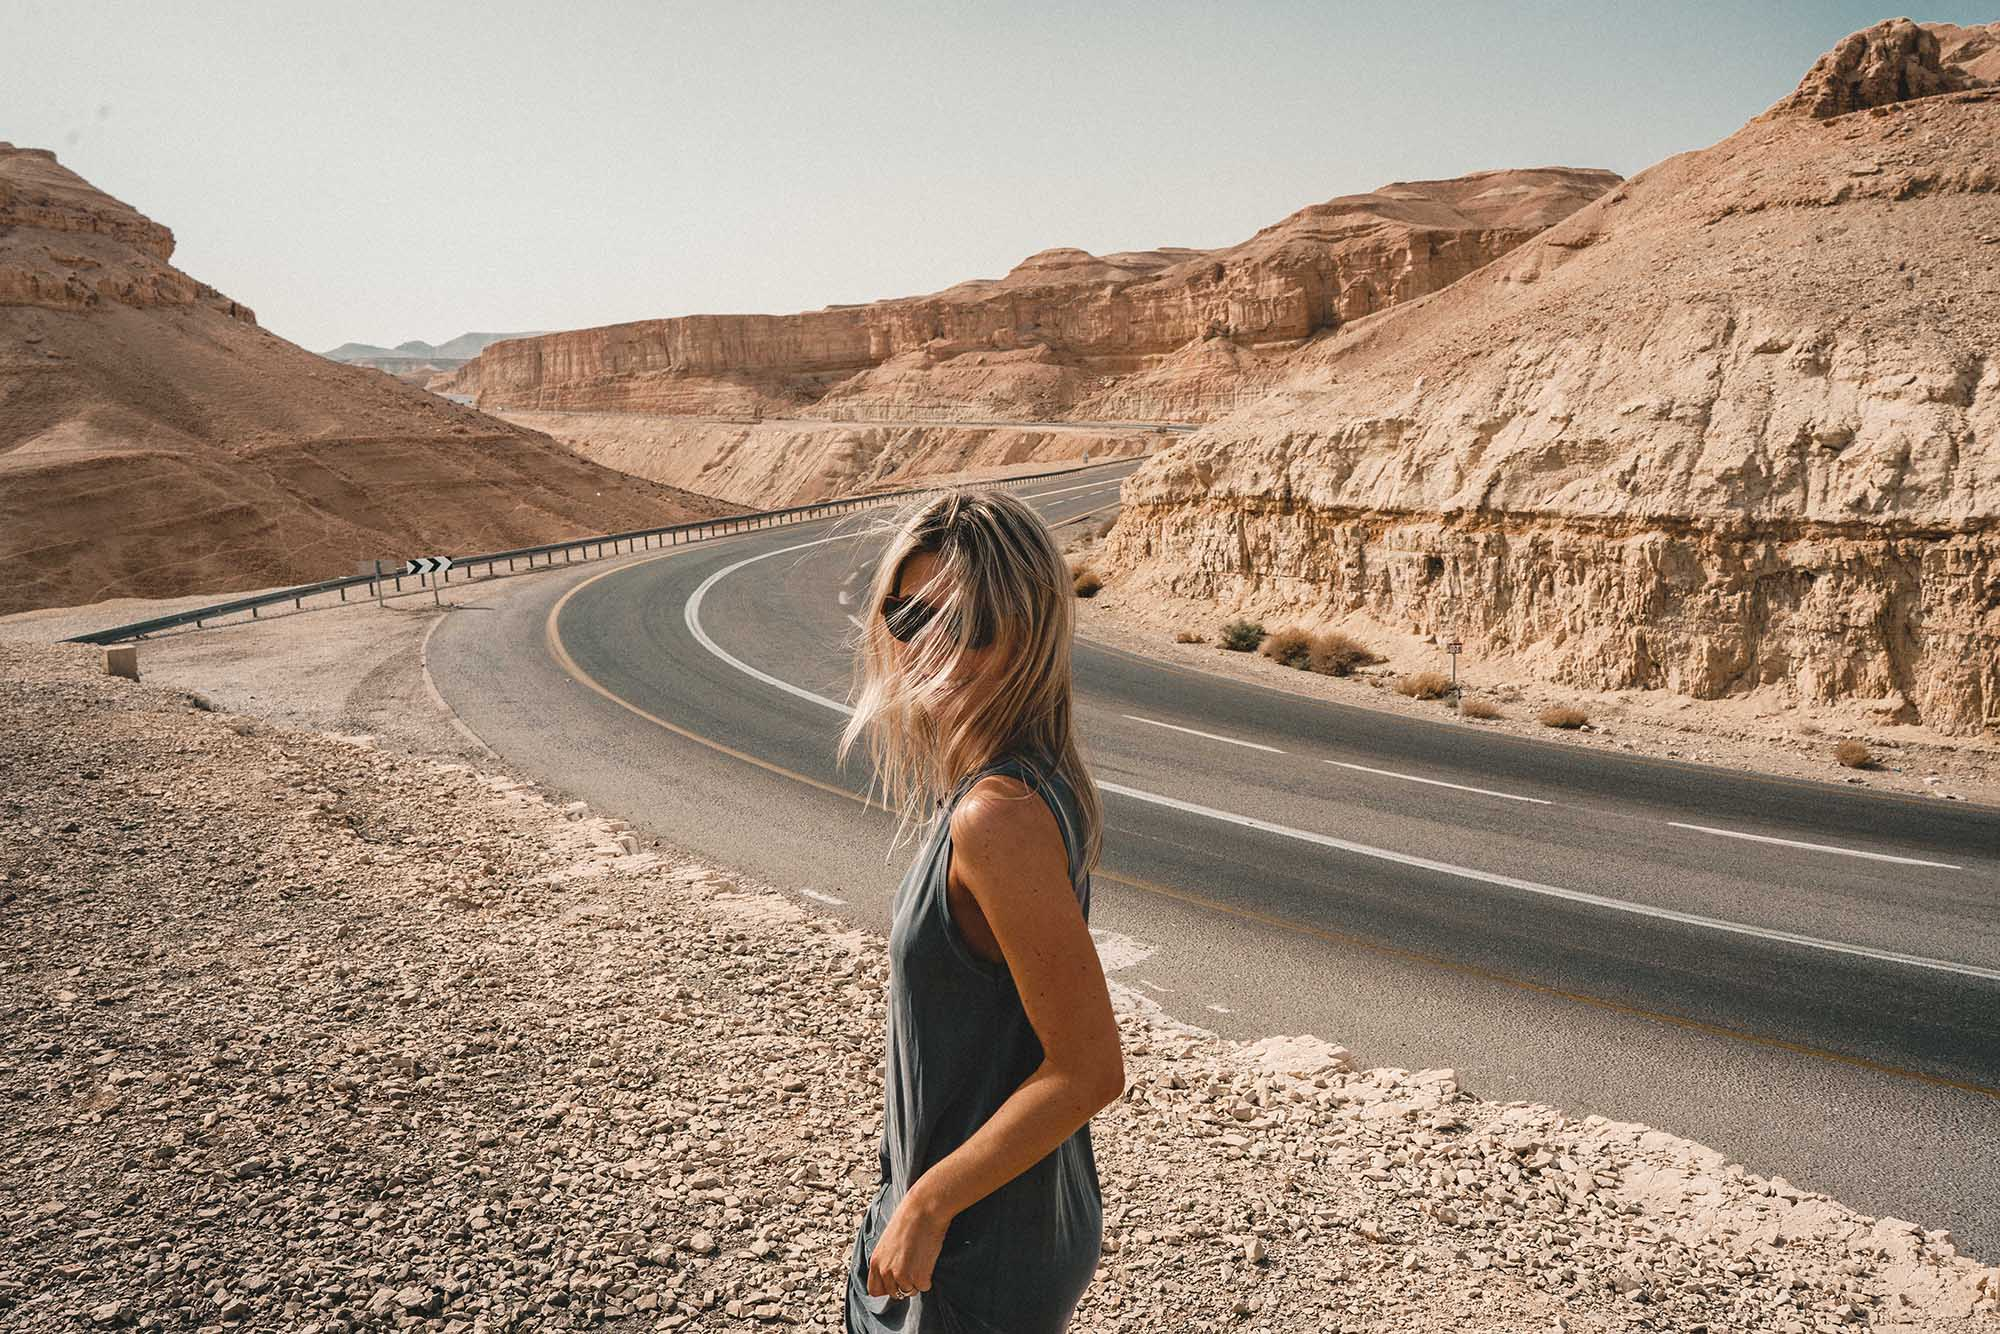 Road tripping through the dead sea region to the negev desert in Israel